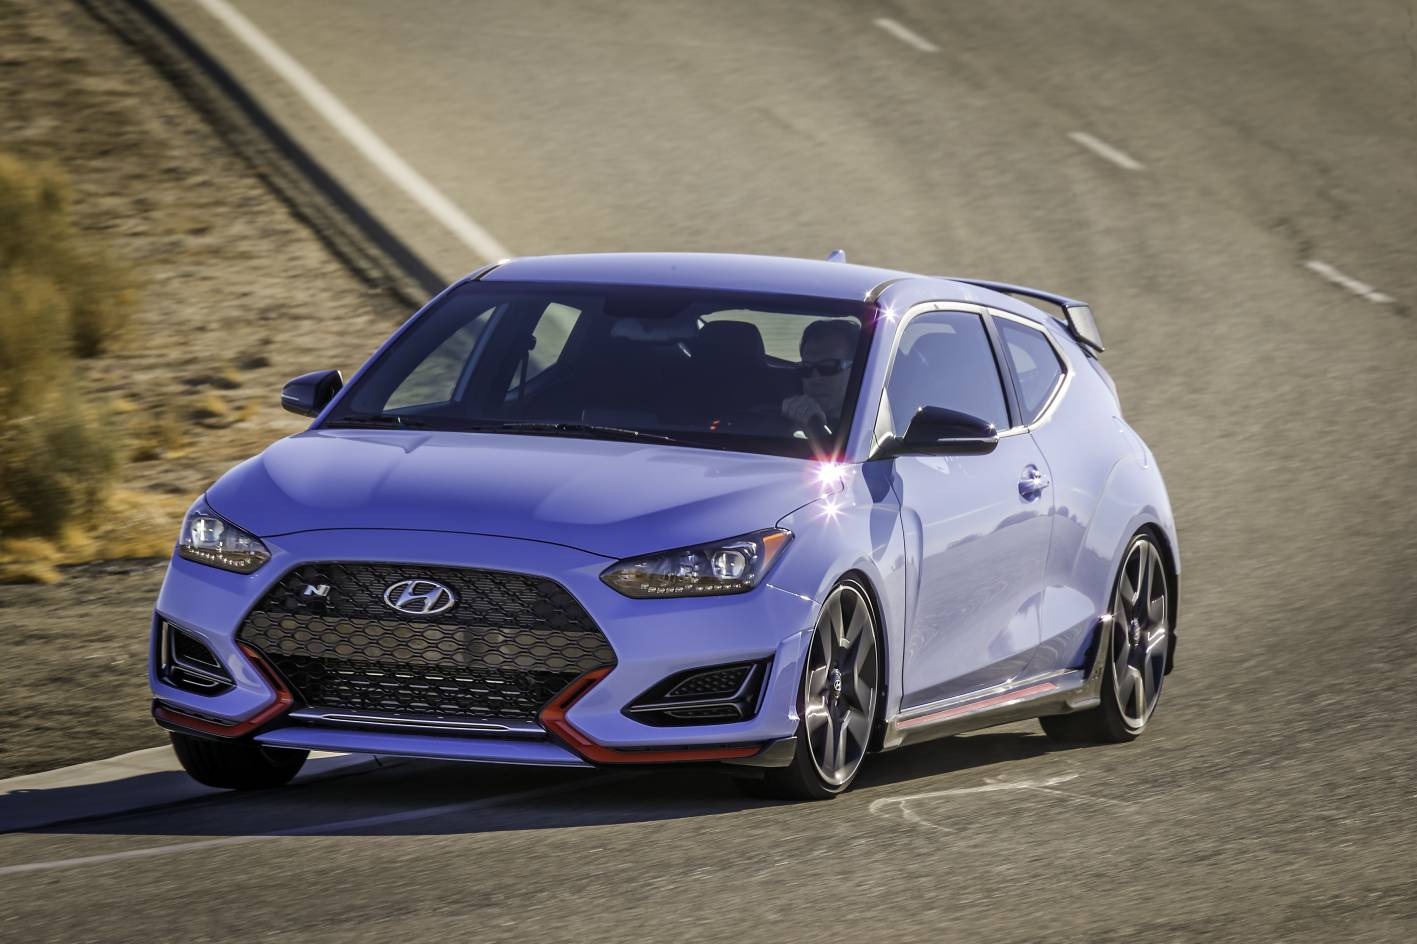 2019 hyundai veloster n revealed coming to australia practical motoring. Black Bedroom Furniture Sets. Home Design Ideas